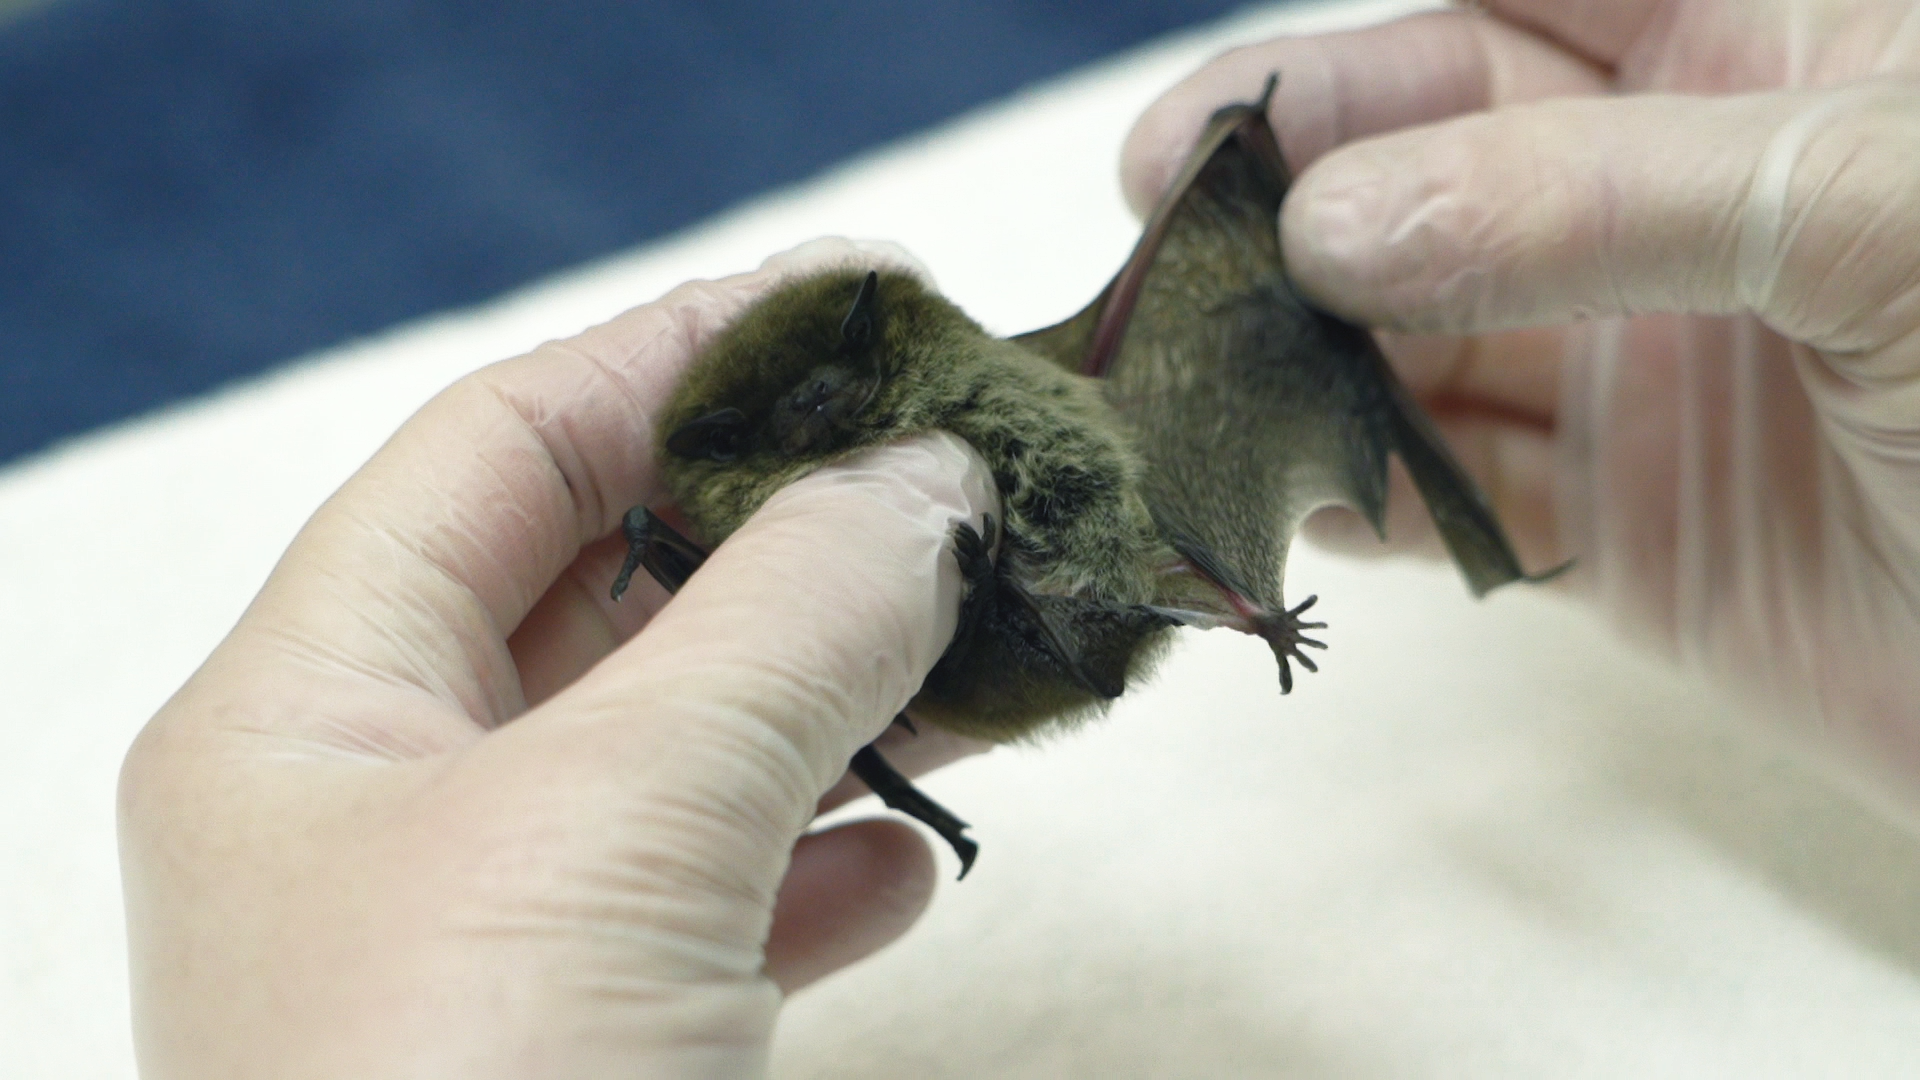 South Essex Wildlife Hospital - putting 'life' back into the 'wild'